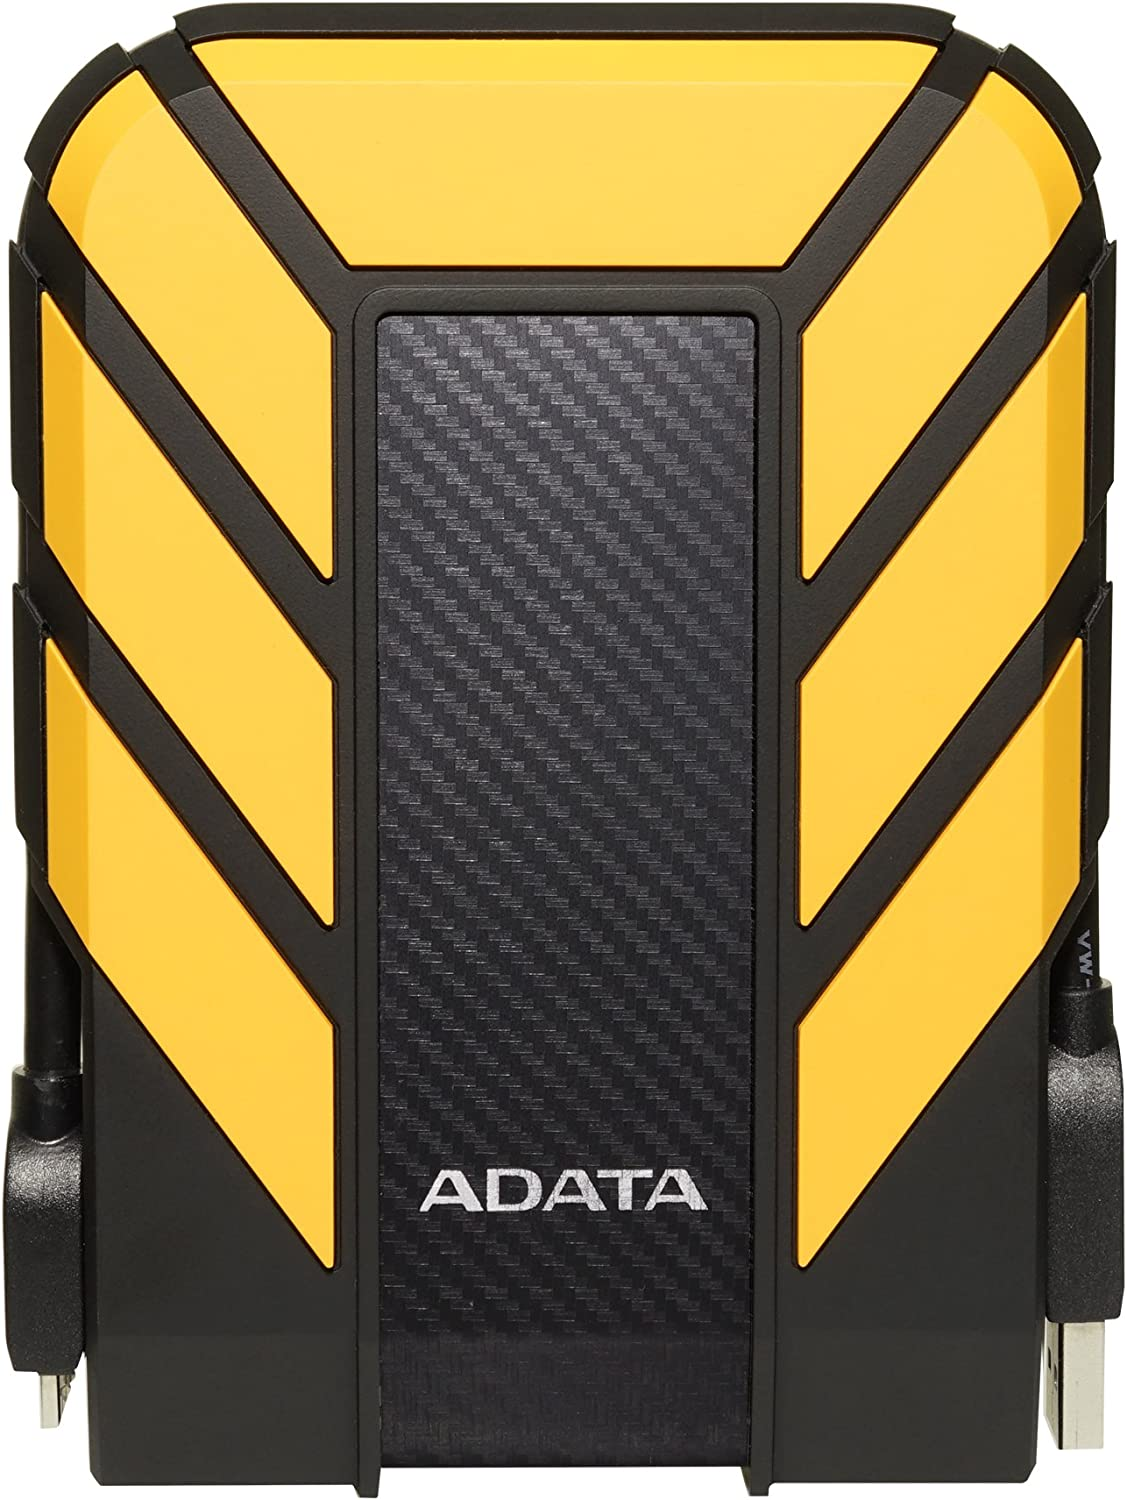 ADATA HD710 Pro 2TB USB 3.1 IP68 Waterproof/Shockproof/Dustproof Ruggedized External Hard Drive, Yellow (AHD710P-2TU31-CYL)